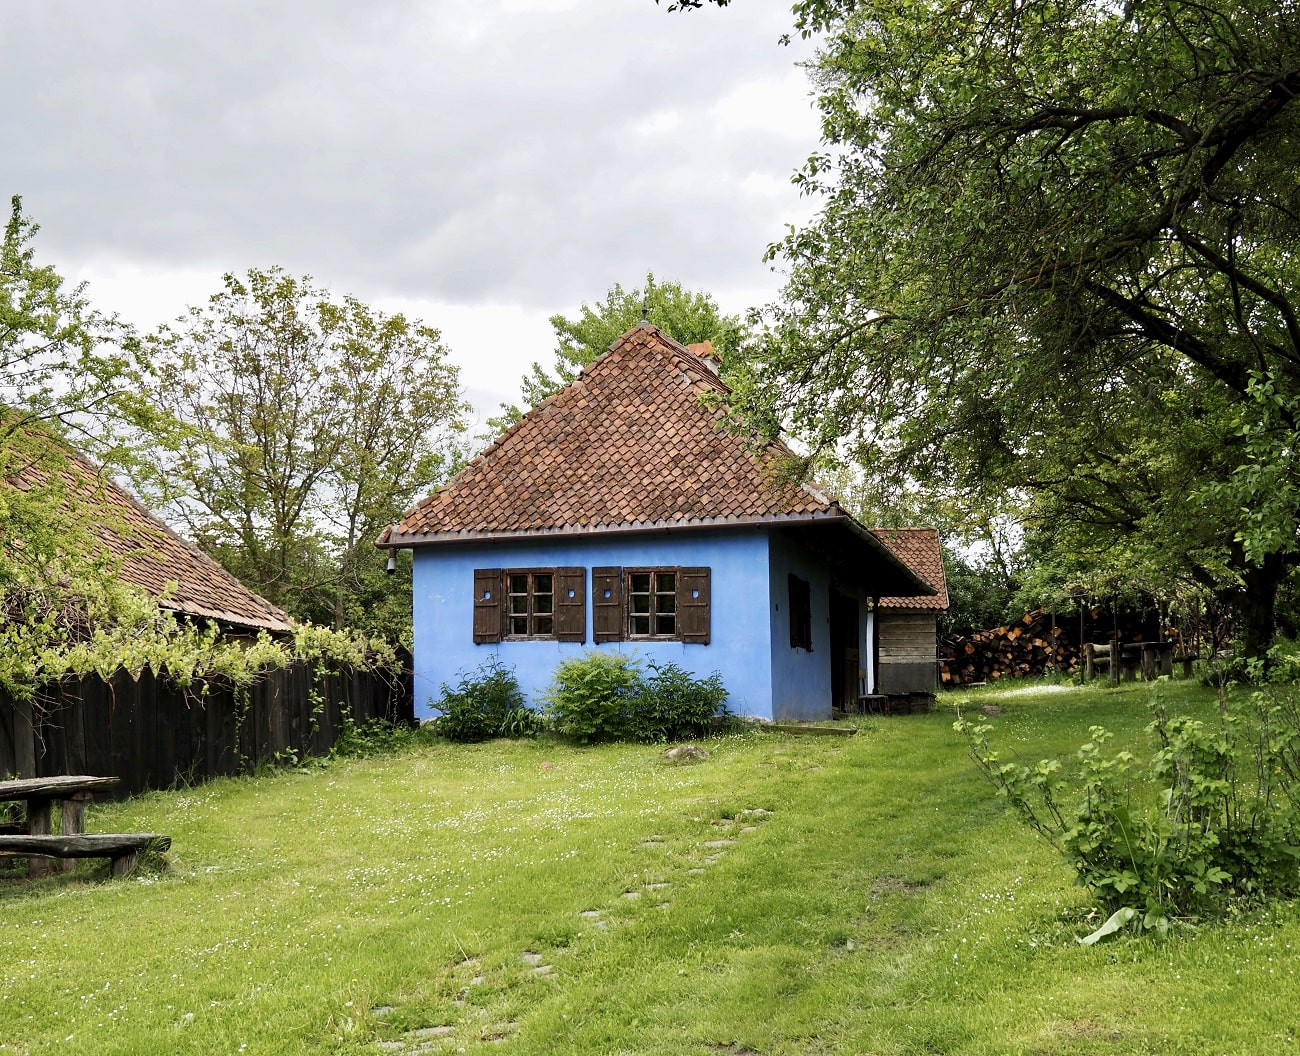 Count Kalnoky's Guesthouses in Miclosoara